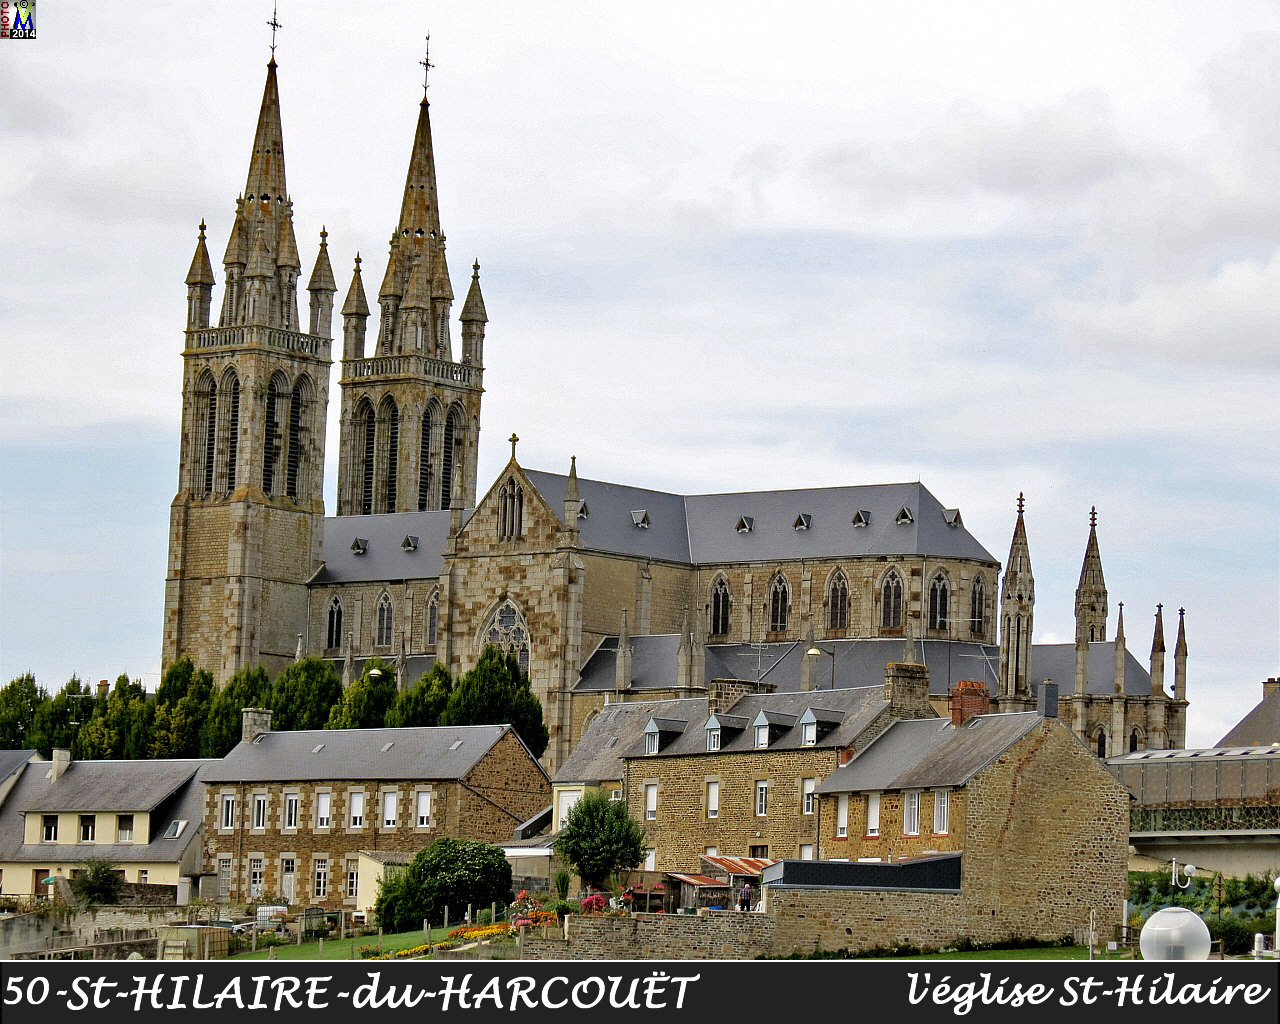 50StHILAIRE-HARCOUET_eglise_102.jpg